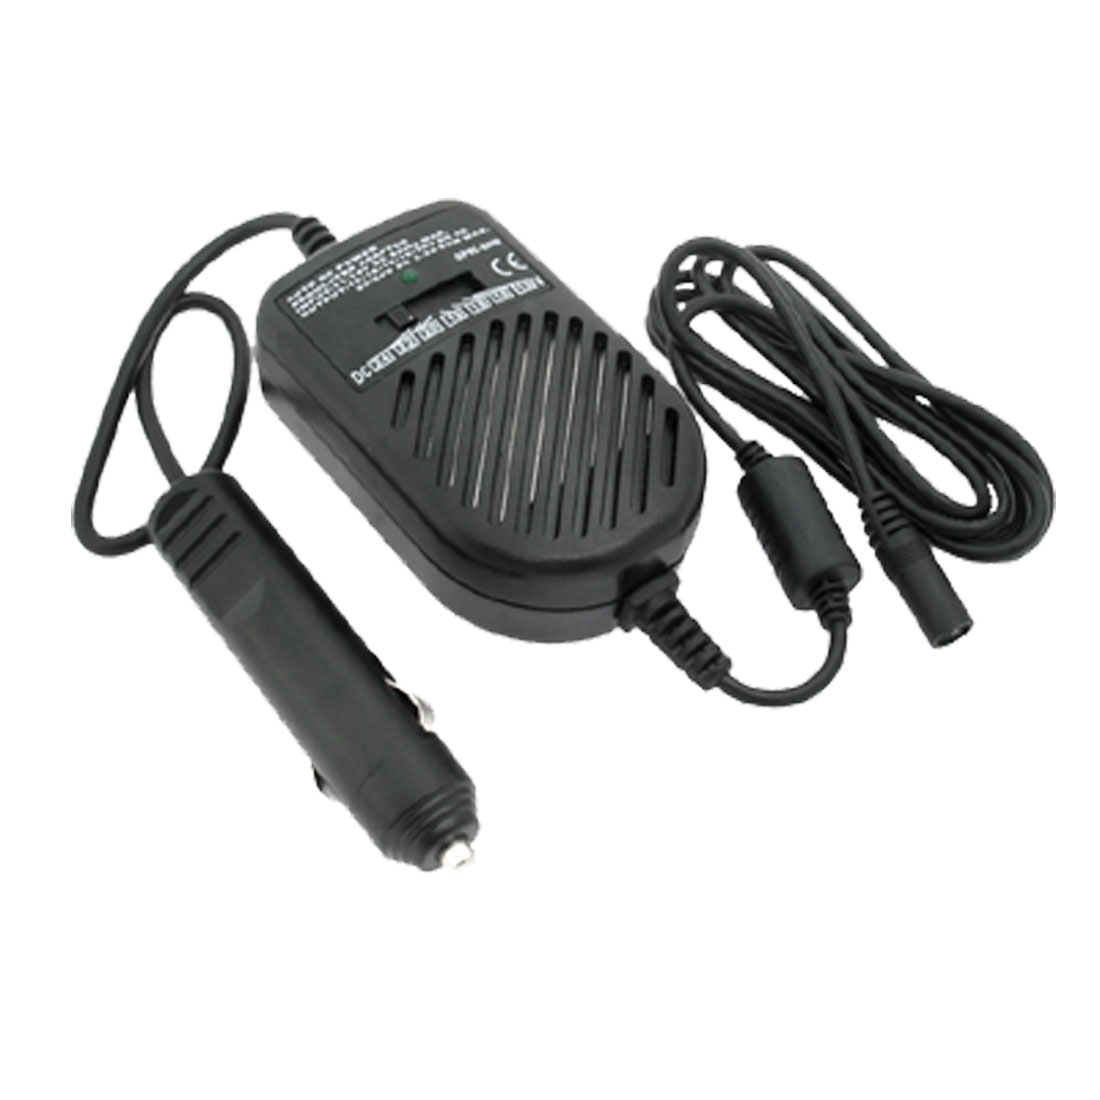 Auto DC power regulated Adaptor charger for Notebook Computer (SP8) Black